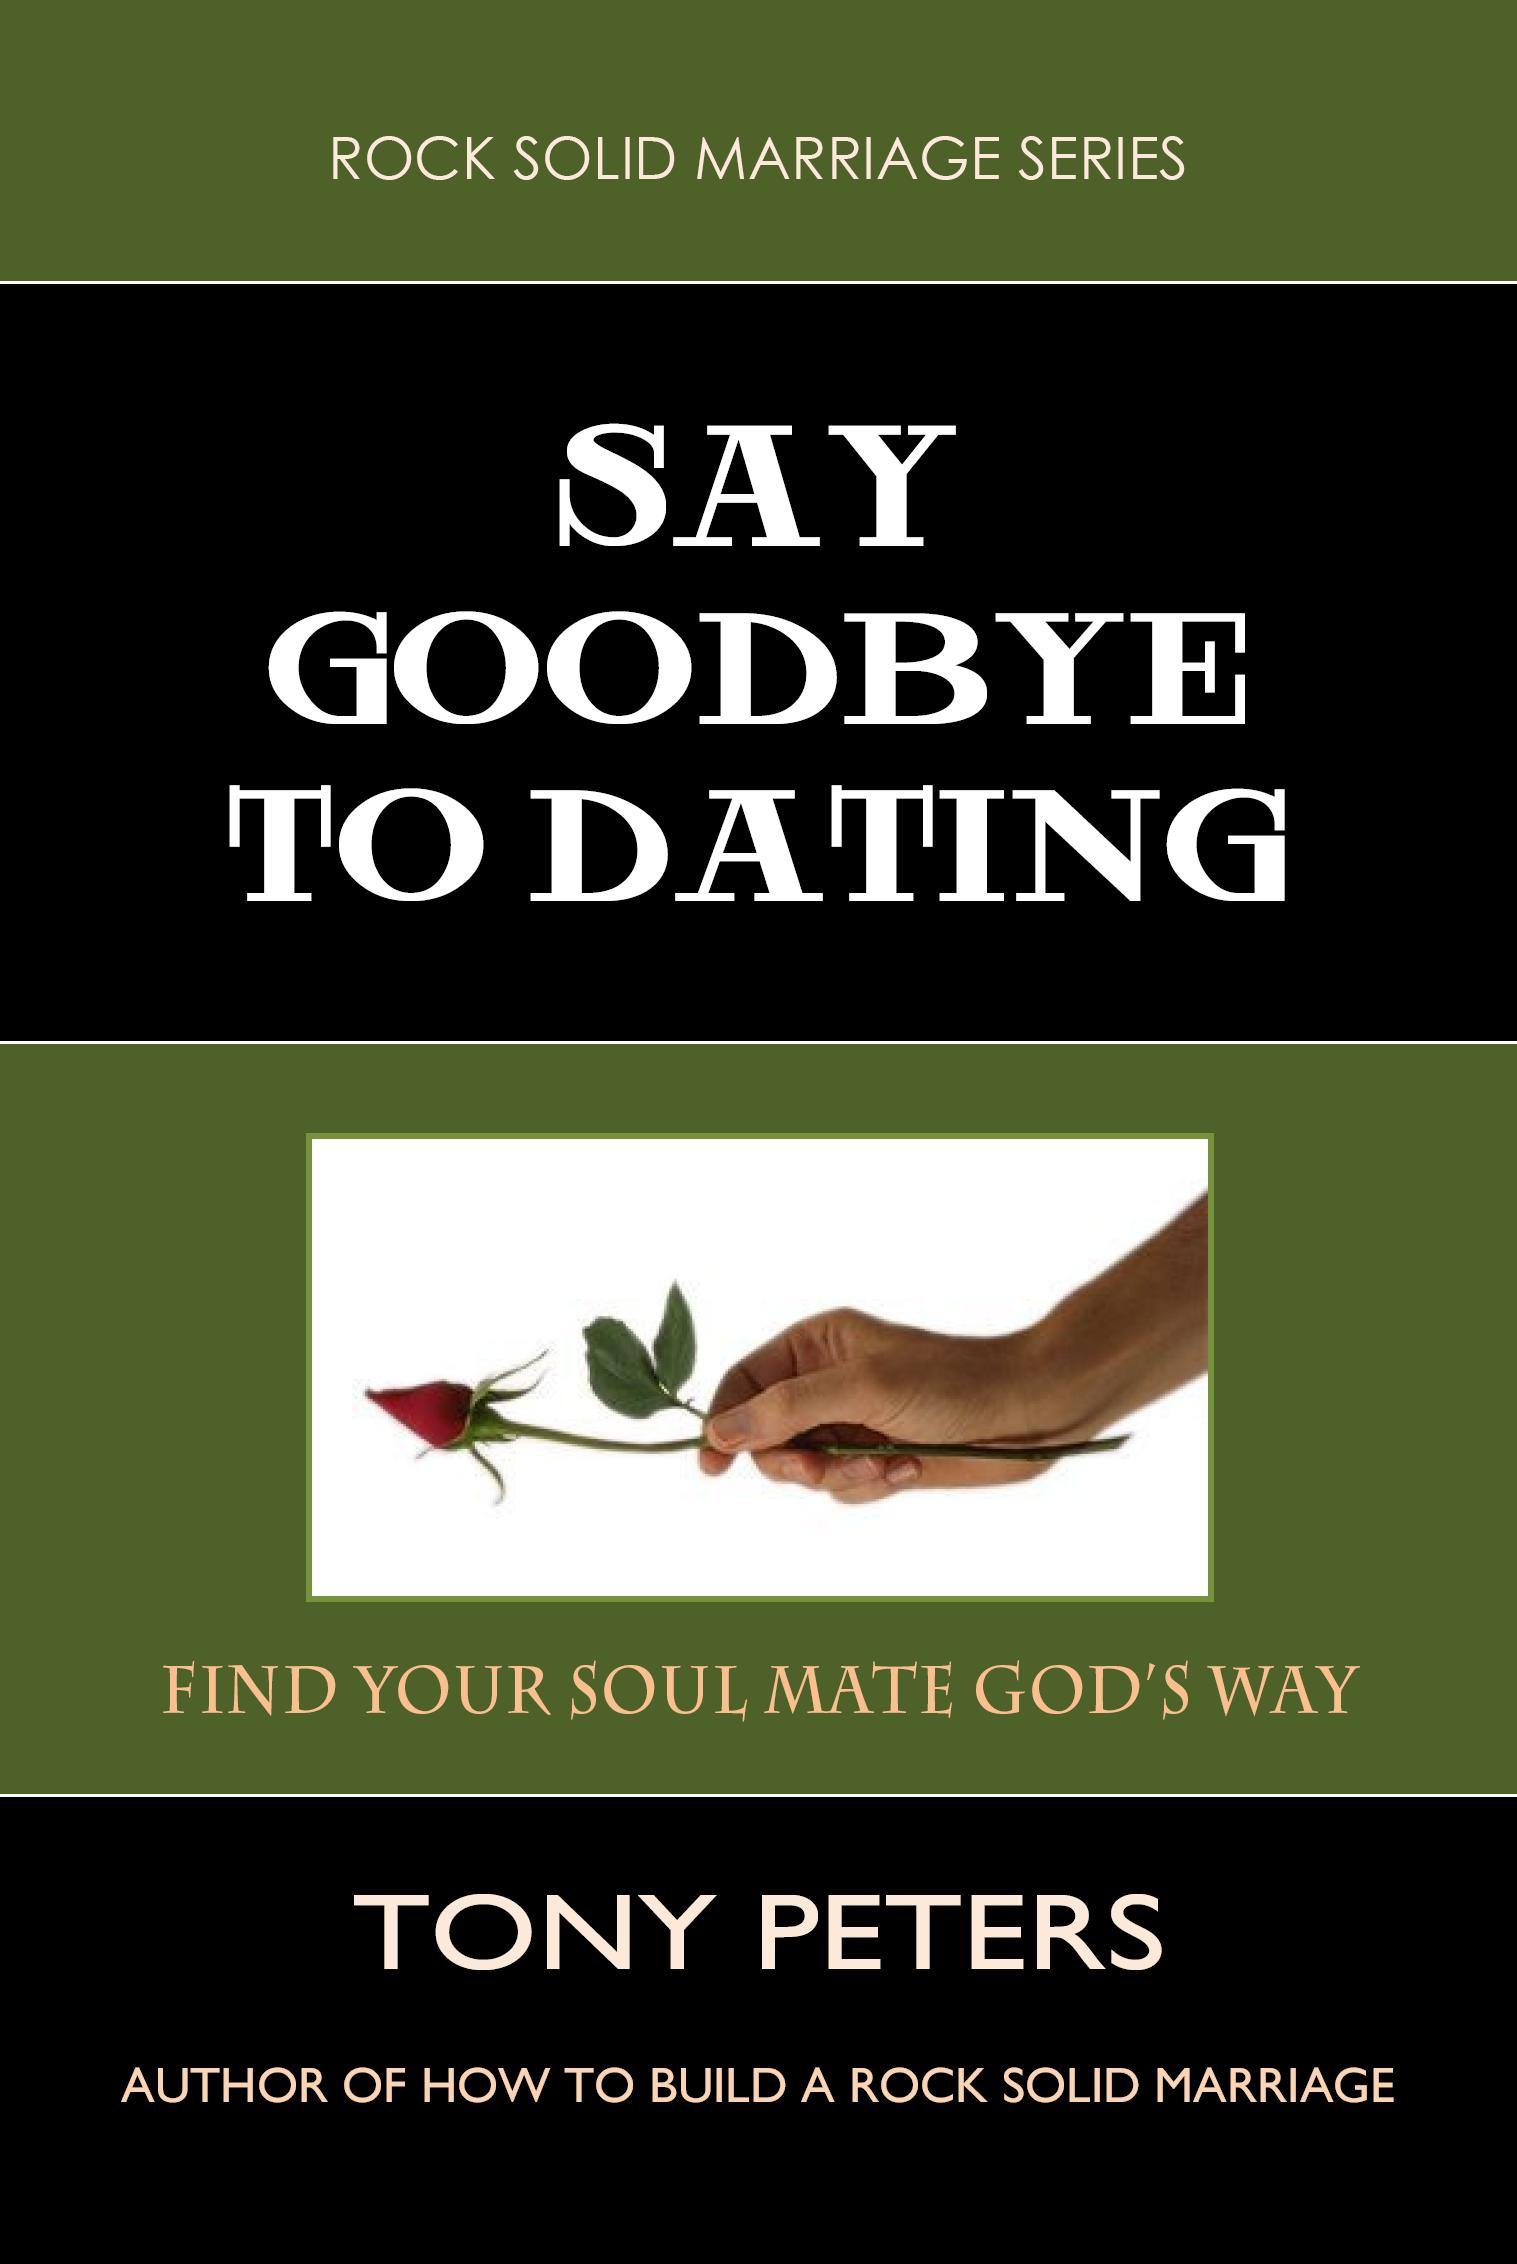 SAY GOODBYE TO DATING